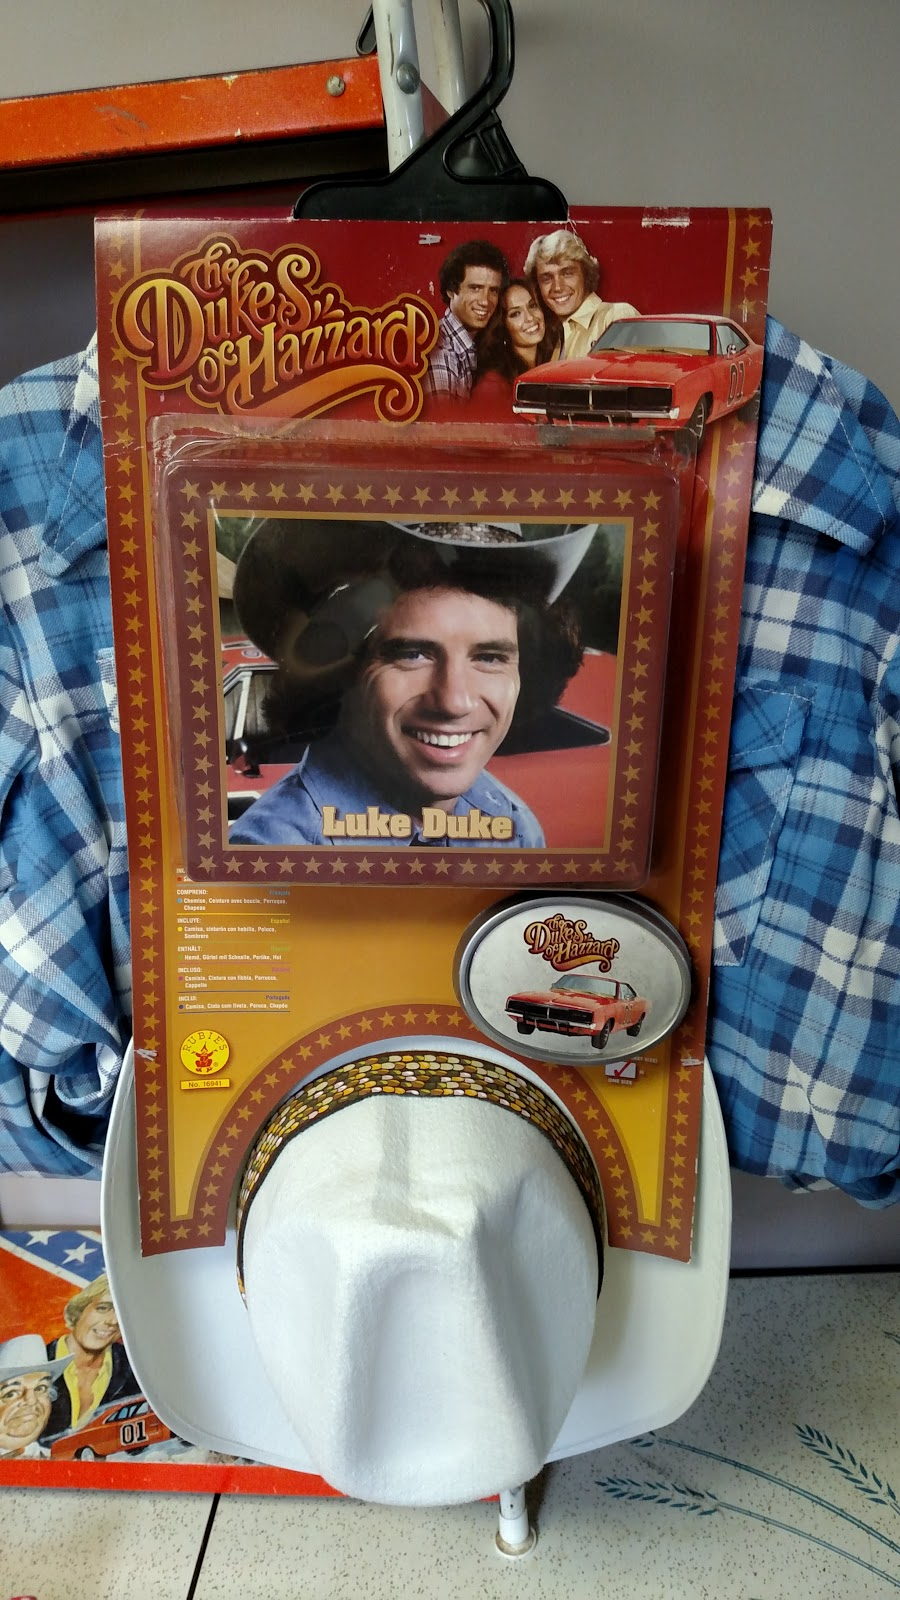 in the dawn of the modern era of dukes of hazzard 2005 rubies released three dukes costumes bo luke and daisy they came packaged on a hanger and